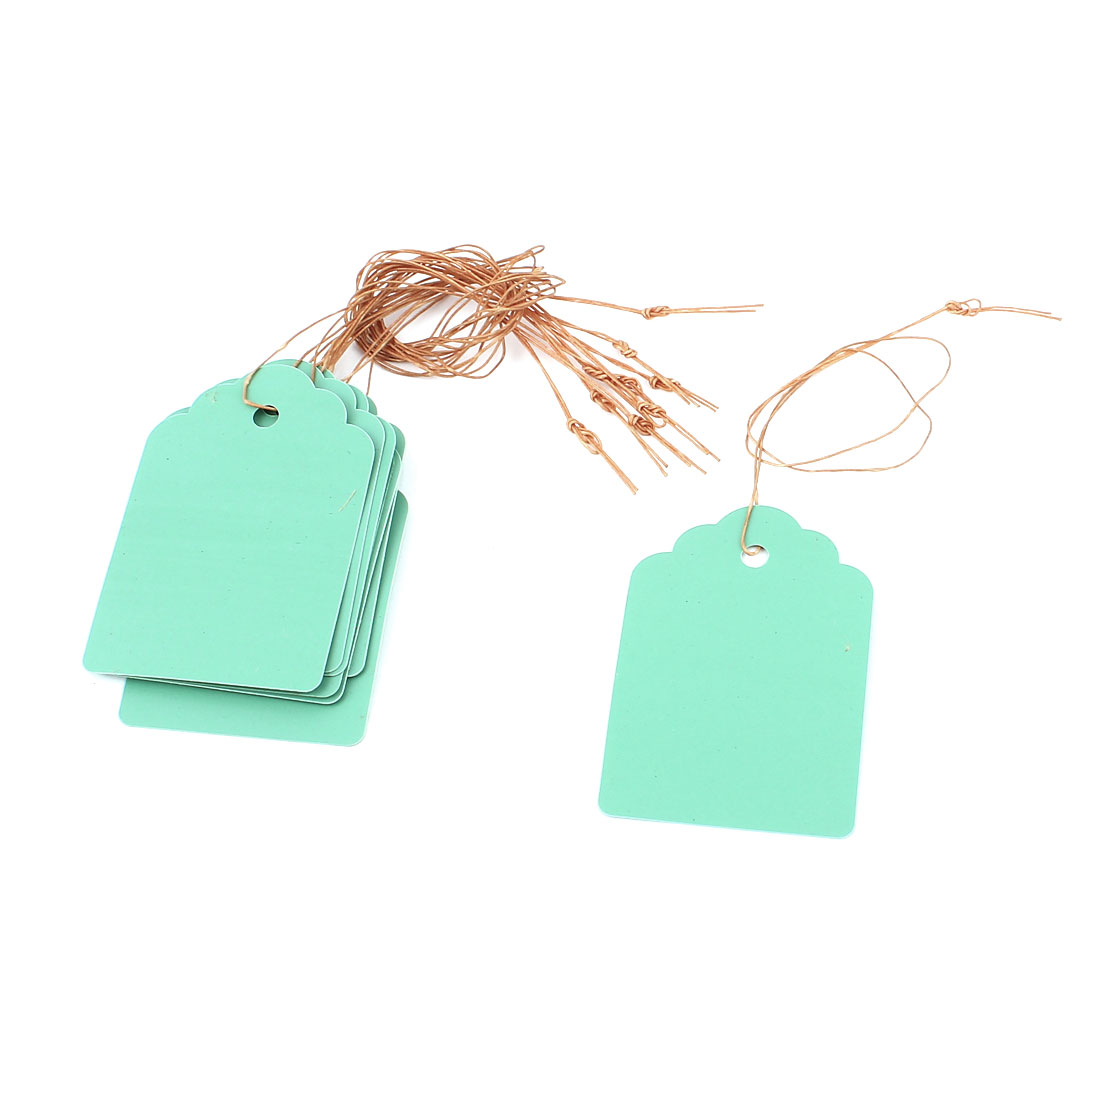 6cmx4cm Plastic Nursery Garden Plant Seed Hanging Tag Label Marker Green 10Pcs